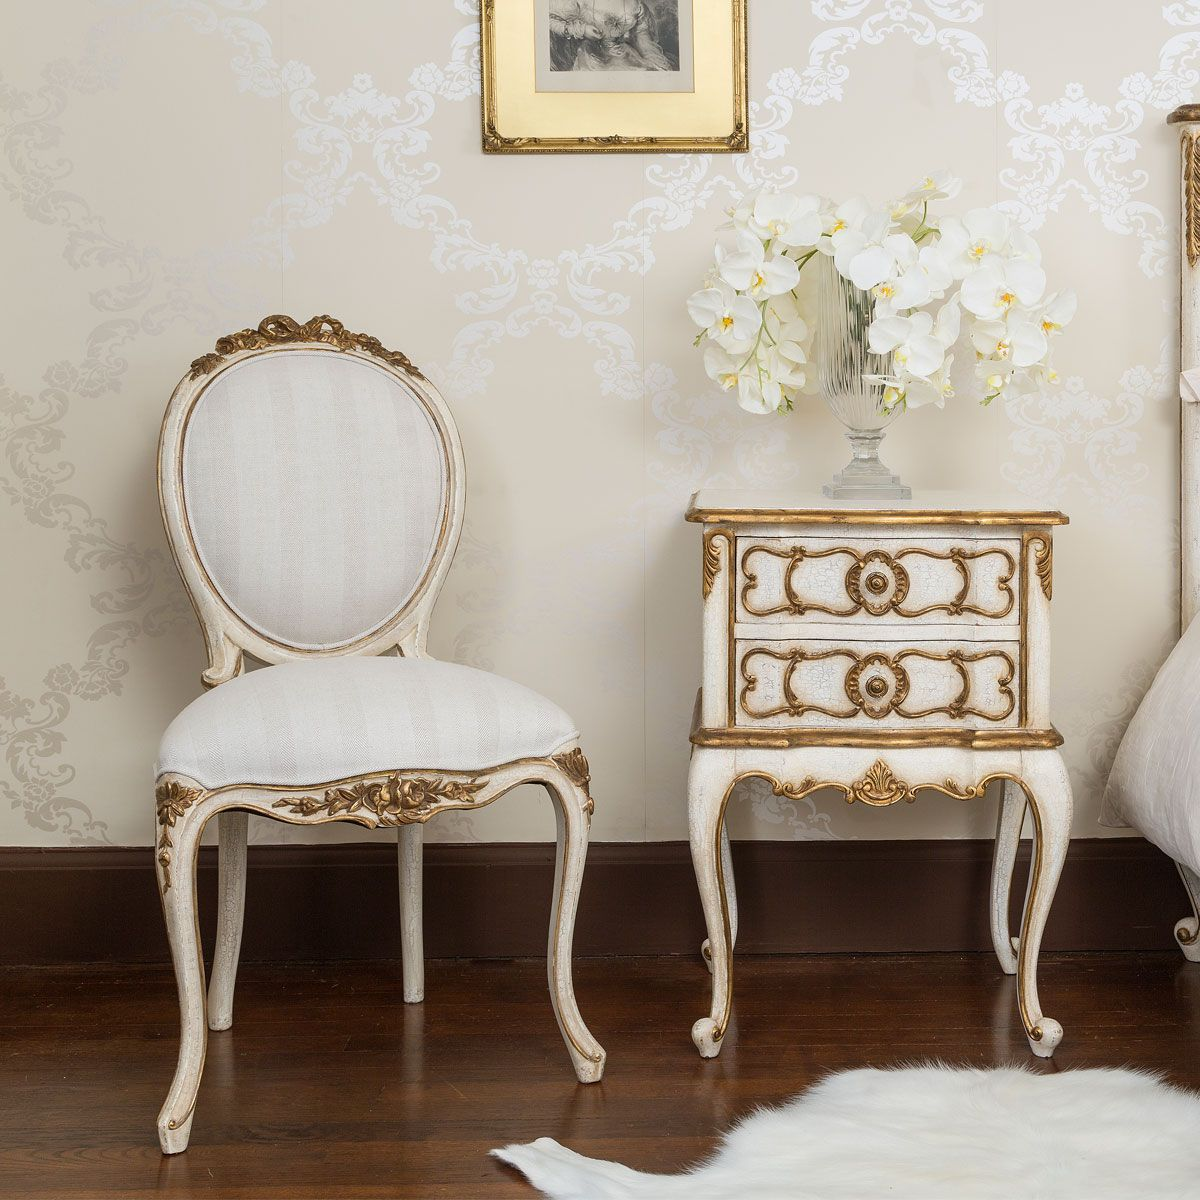 Terrific Palais Royal Ivory Gold French Chair In 2019 French Machost Co Dining Chair Design Ideas Machostcouk